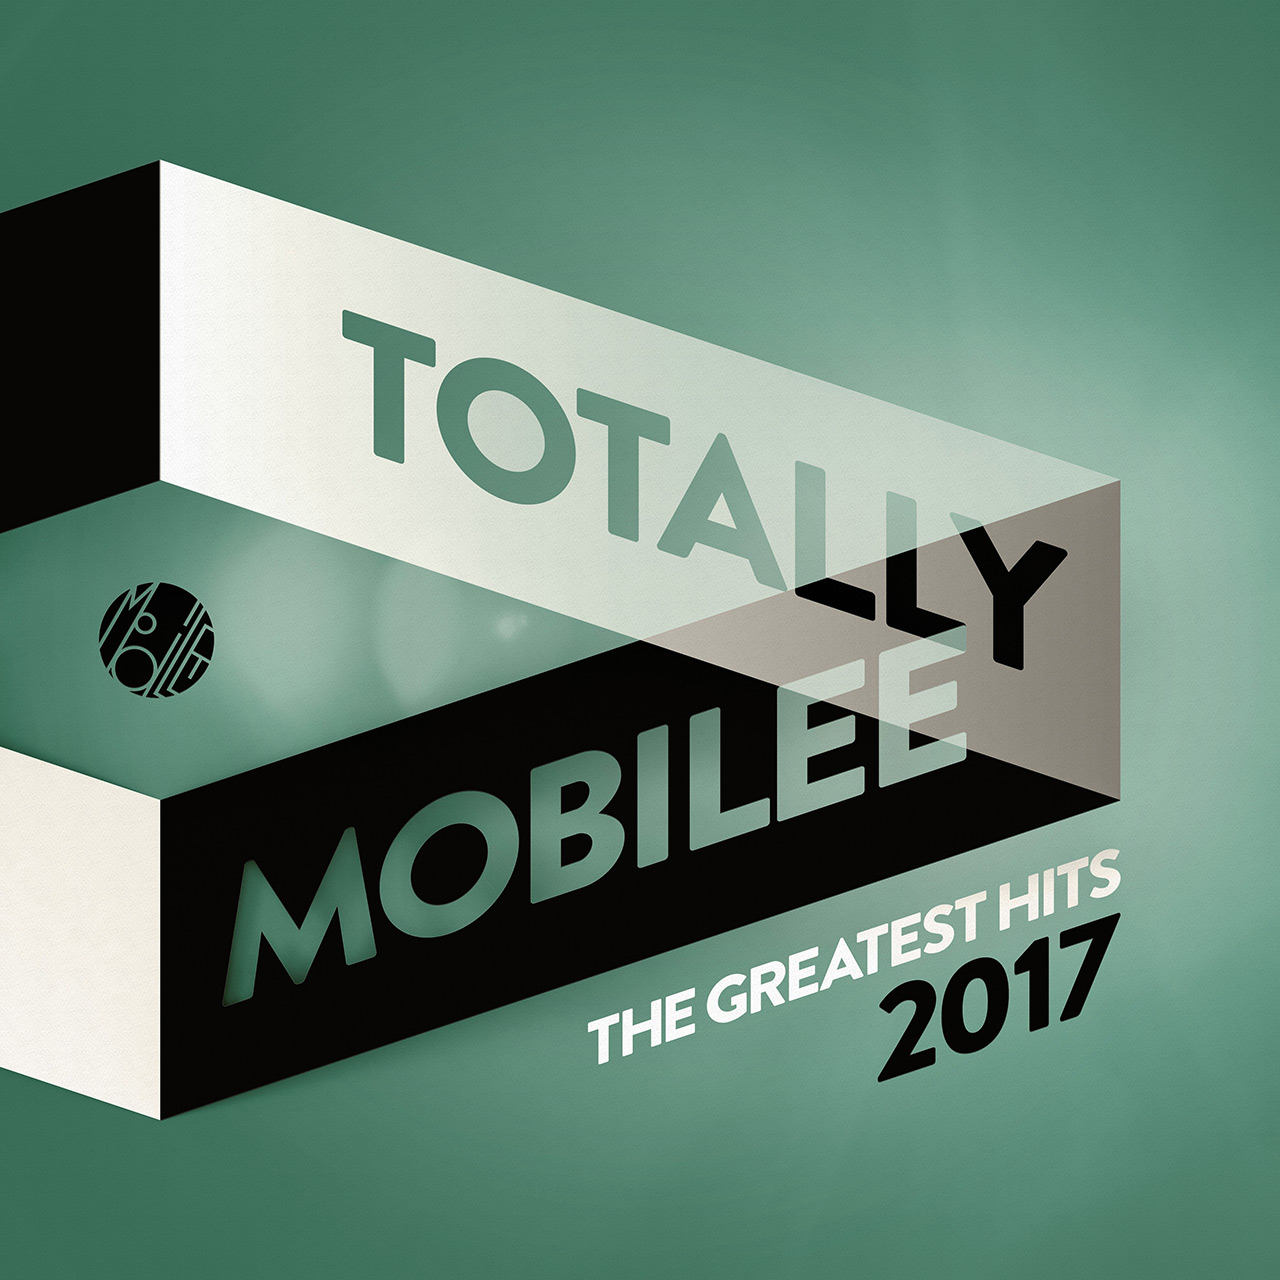 TotallyMobilee2017_artwork_small